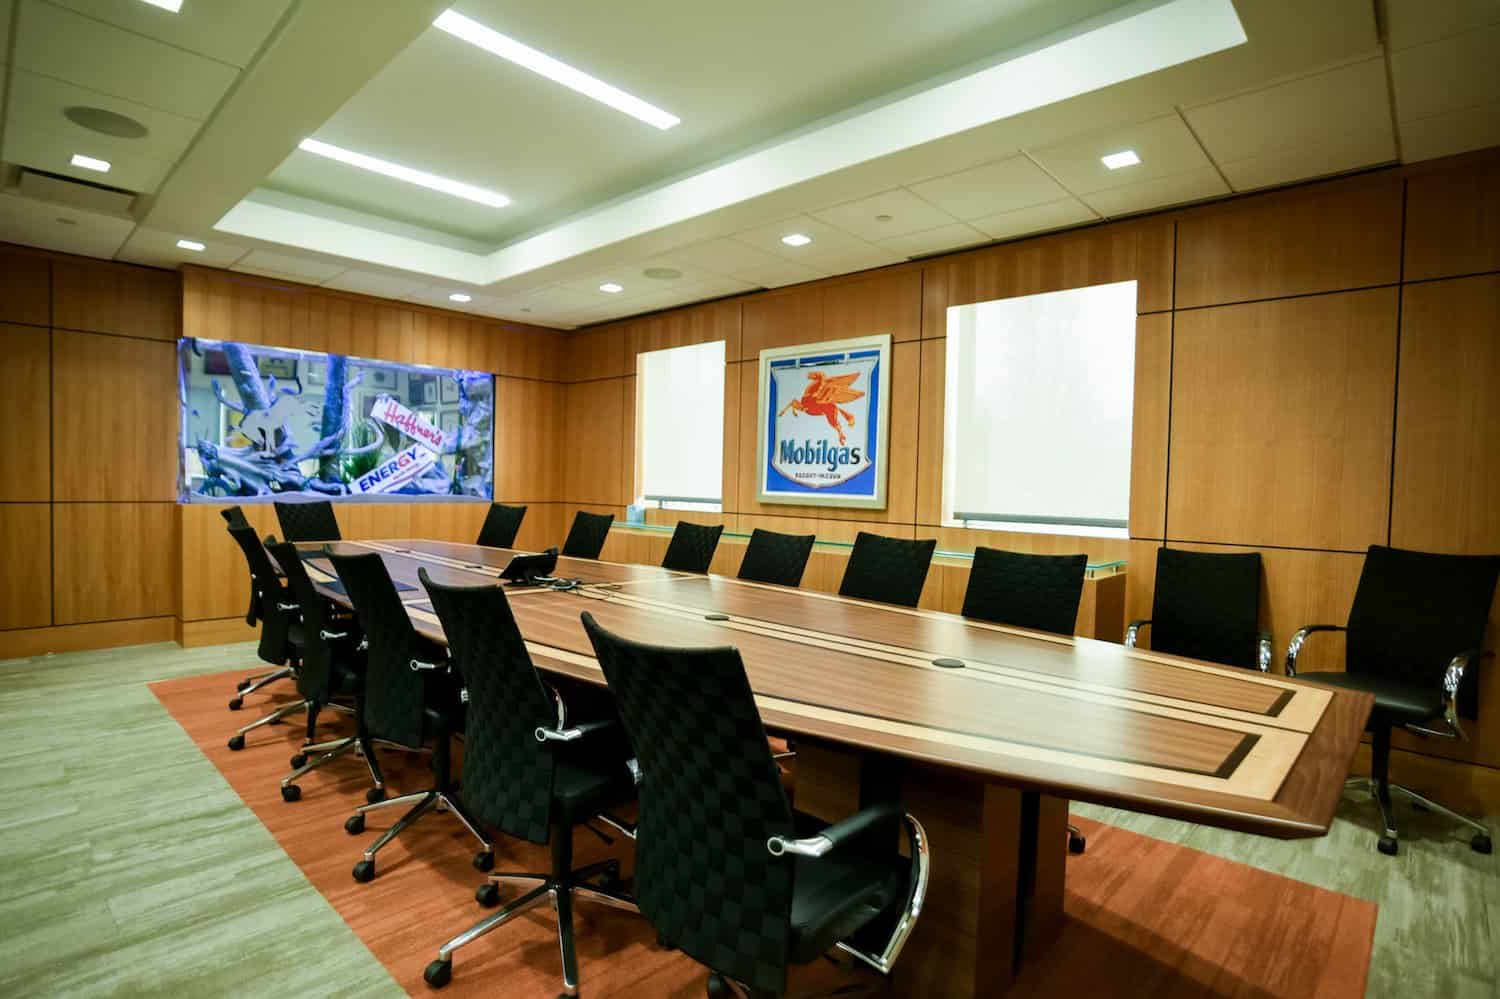 8 Conference Room Design Ideas Trends For 2021